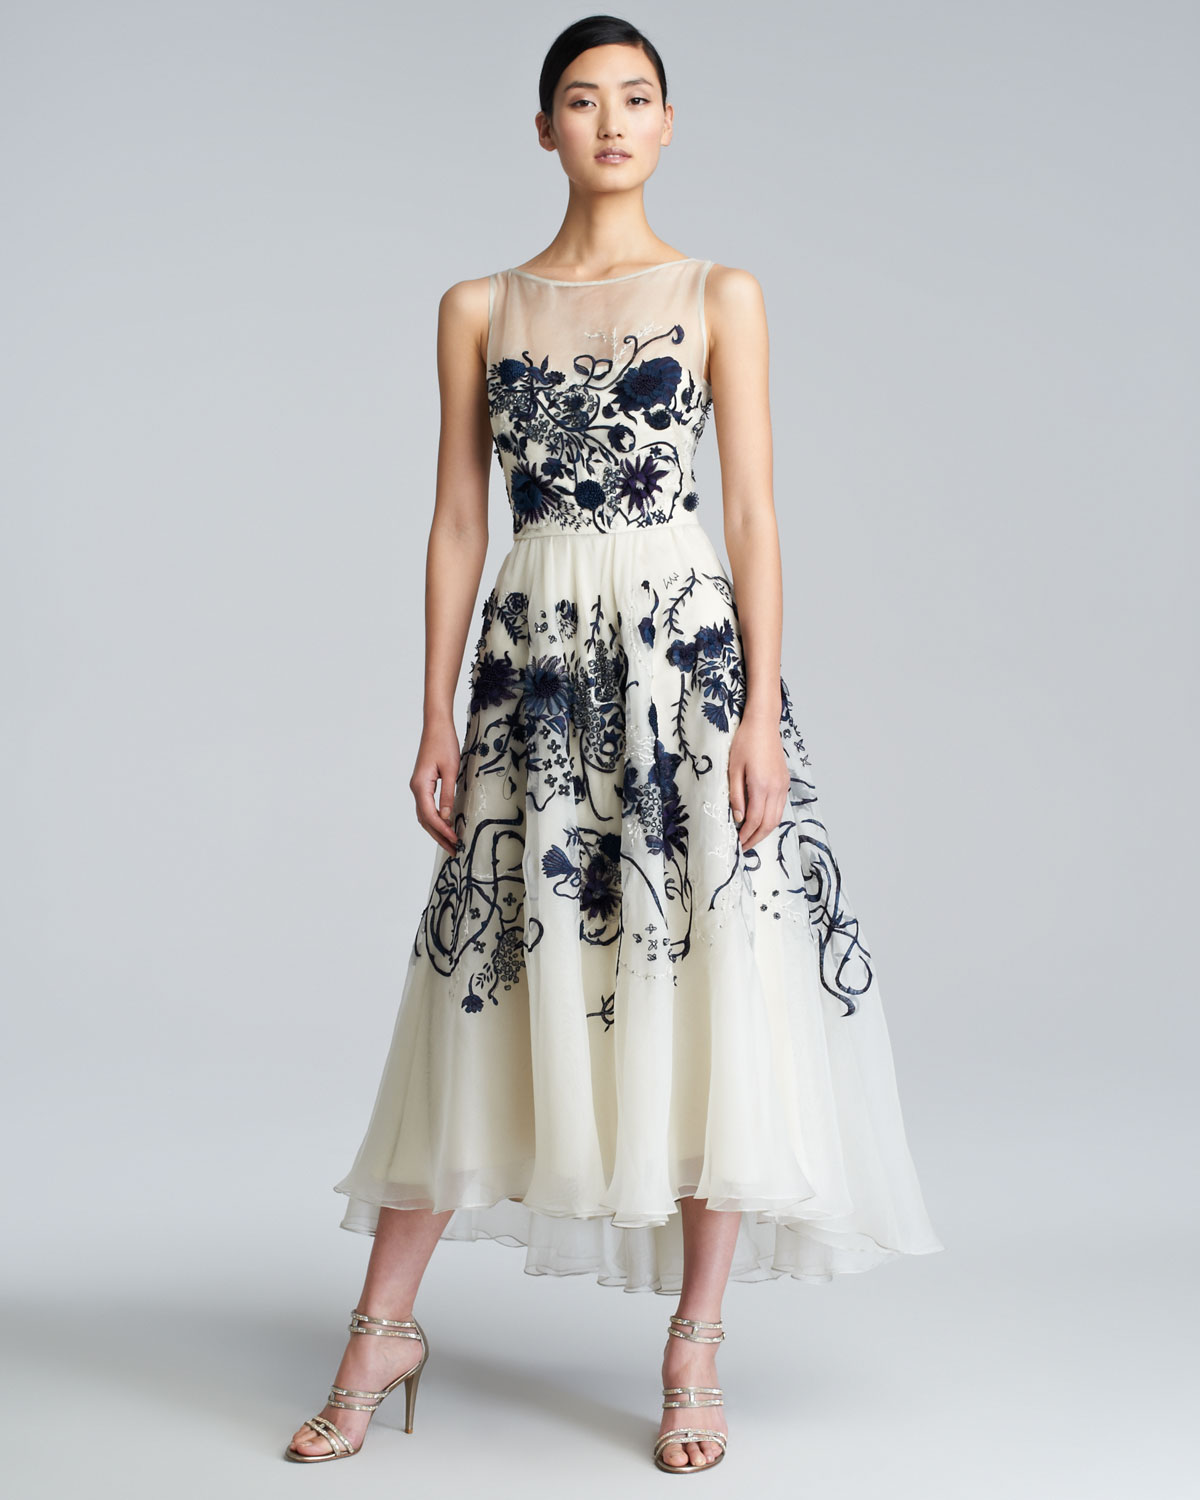 Lela rose floralembroidered silk chiffon dress in white lyst